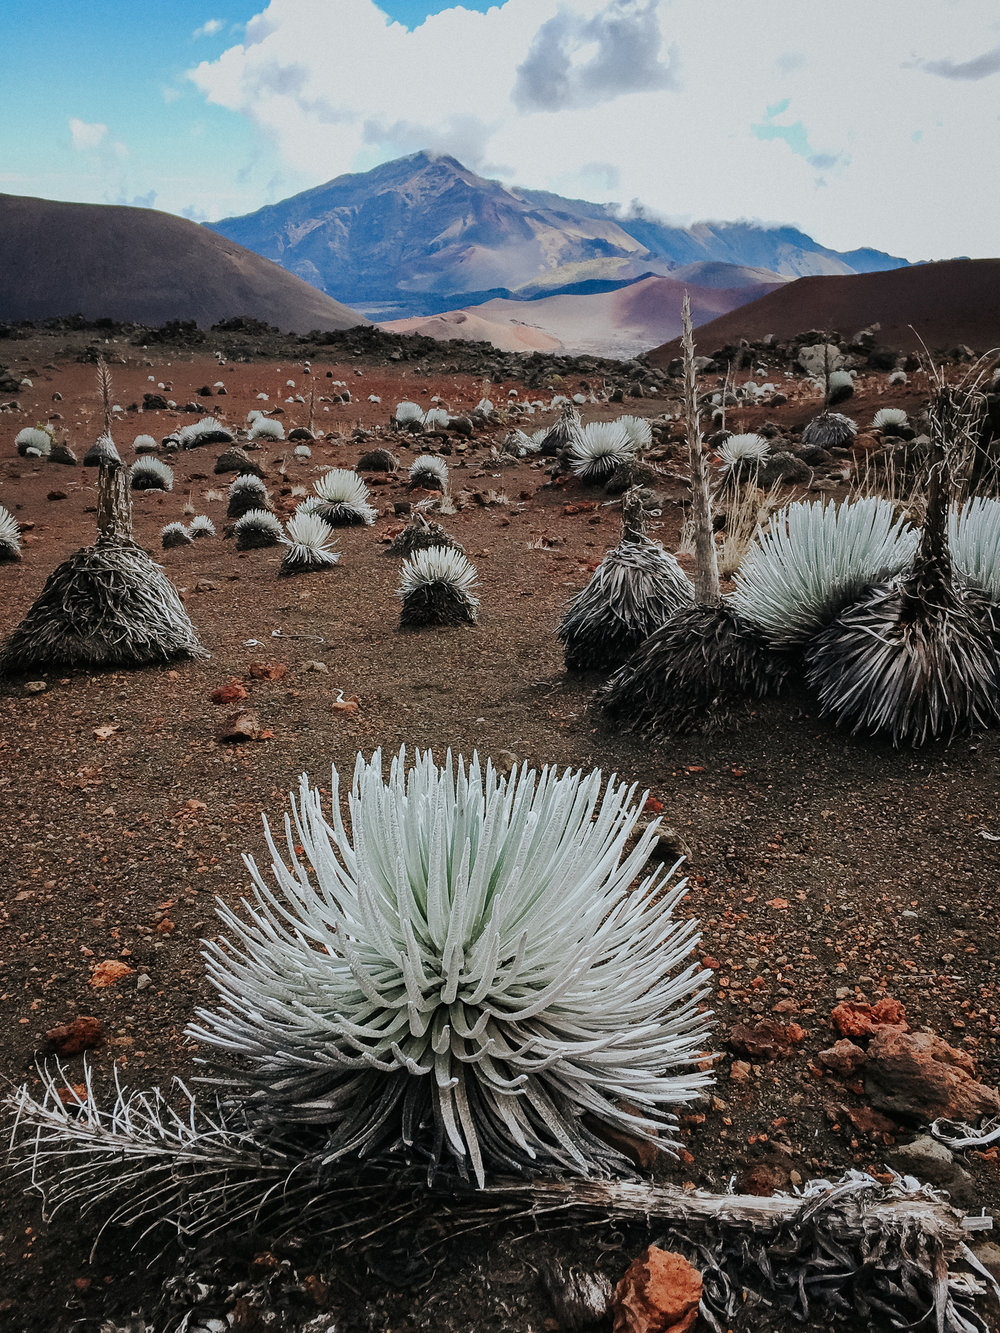 Hawaiian Silversword only exists in Hawaii. It can live up to 90 years and blooms once in its lifetime.